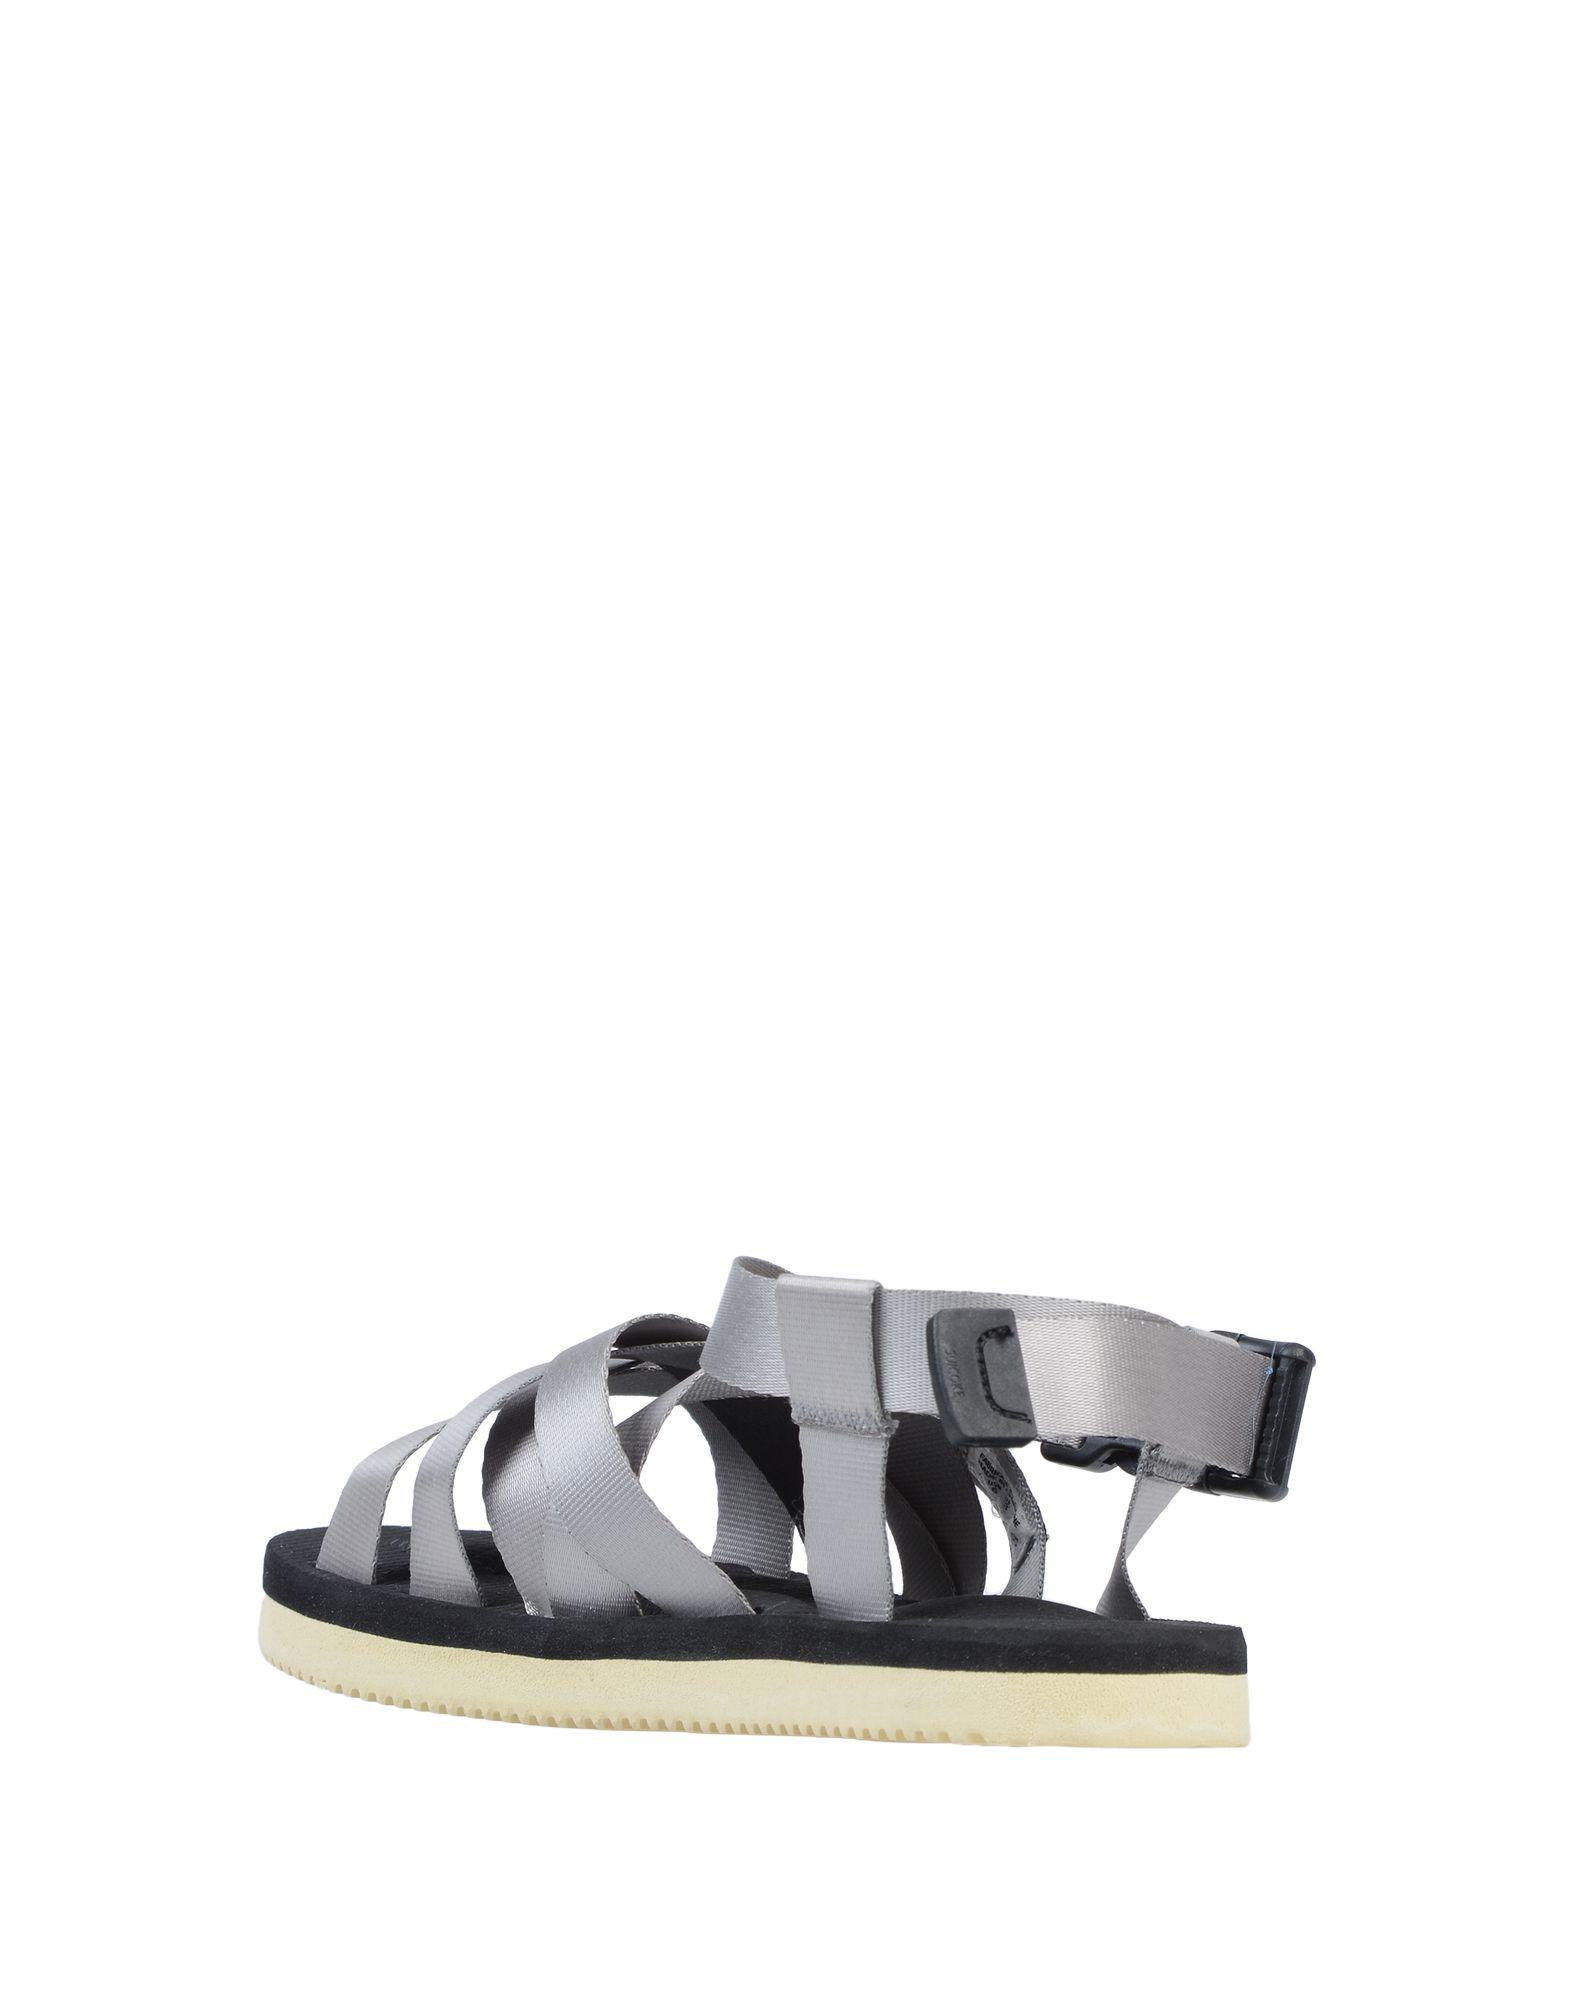 817ad5c6989 Lyst - Suicoke Sandals in Gray